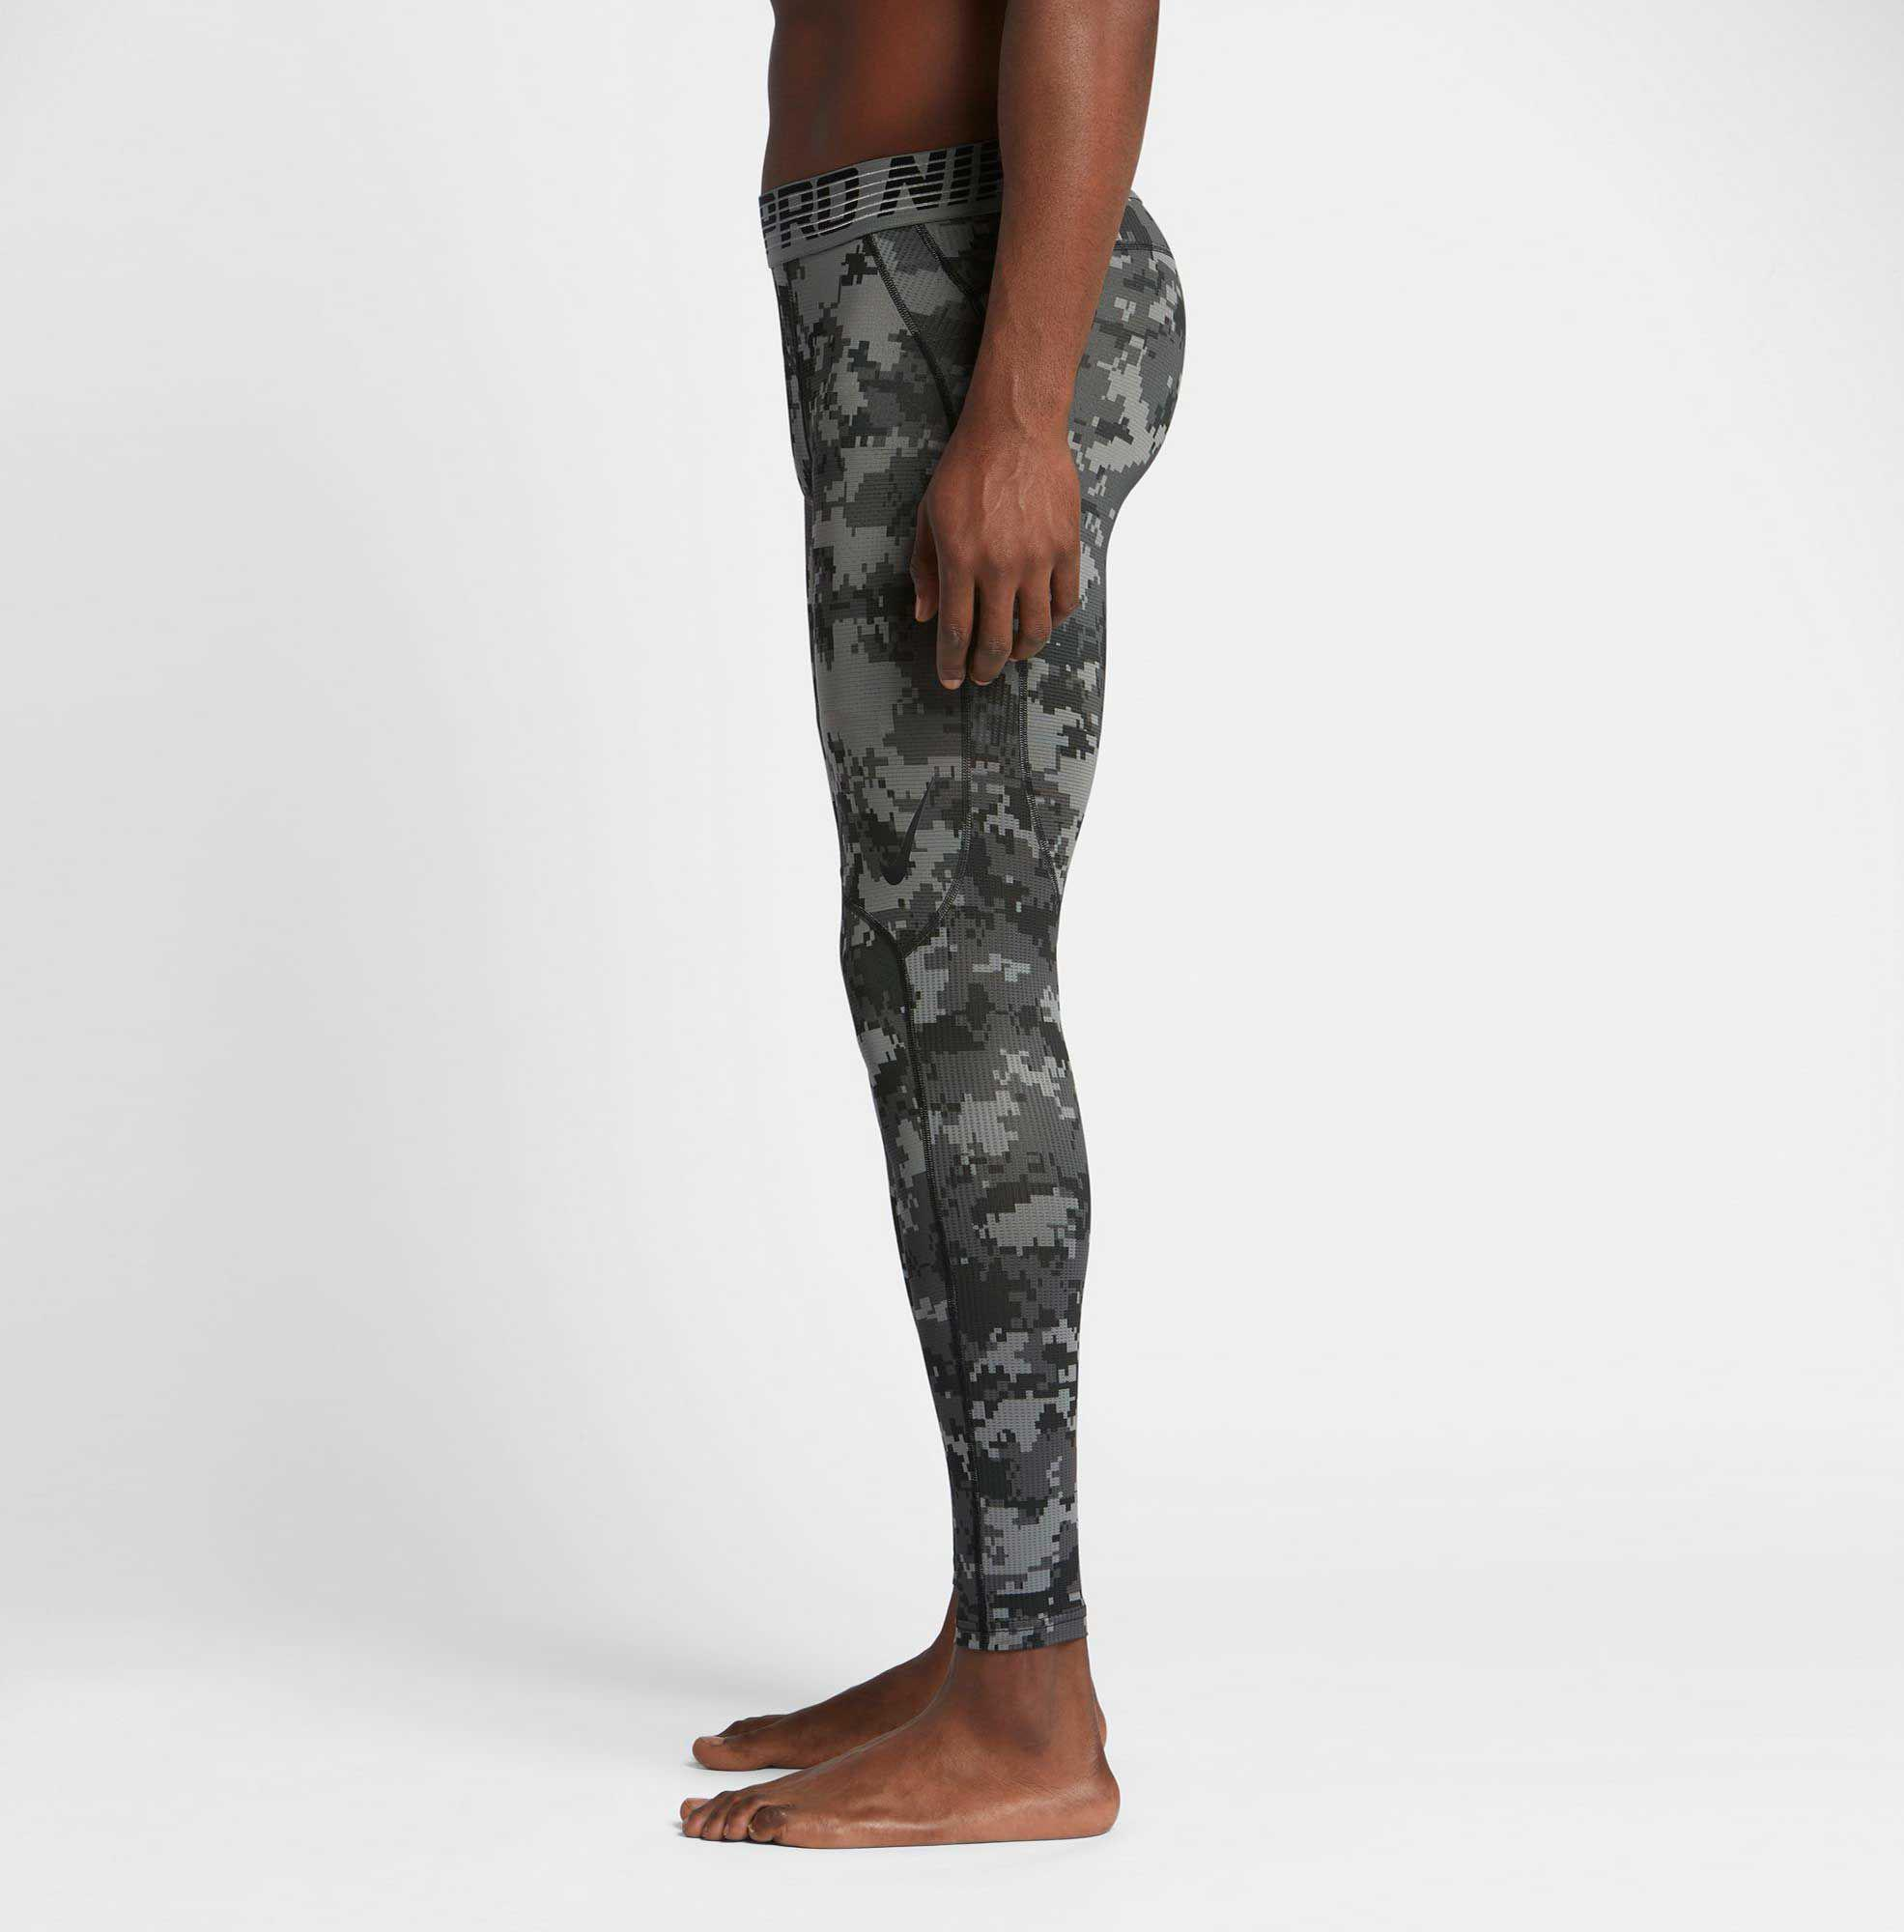 39603482648d8 Nike Pro Hypercool Digi Camo Printed Tights in Black for Men - Lyst